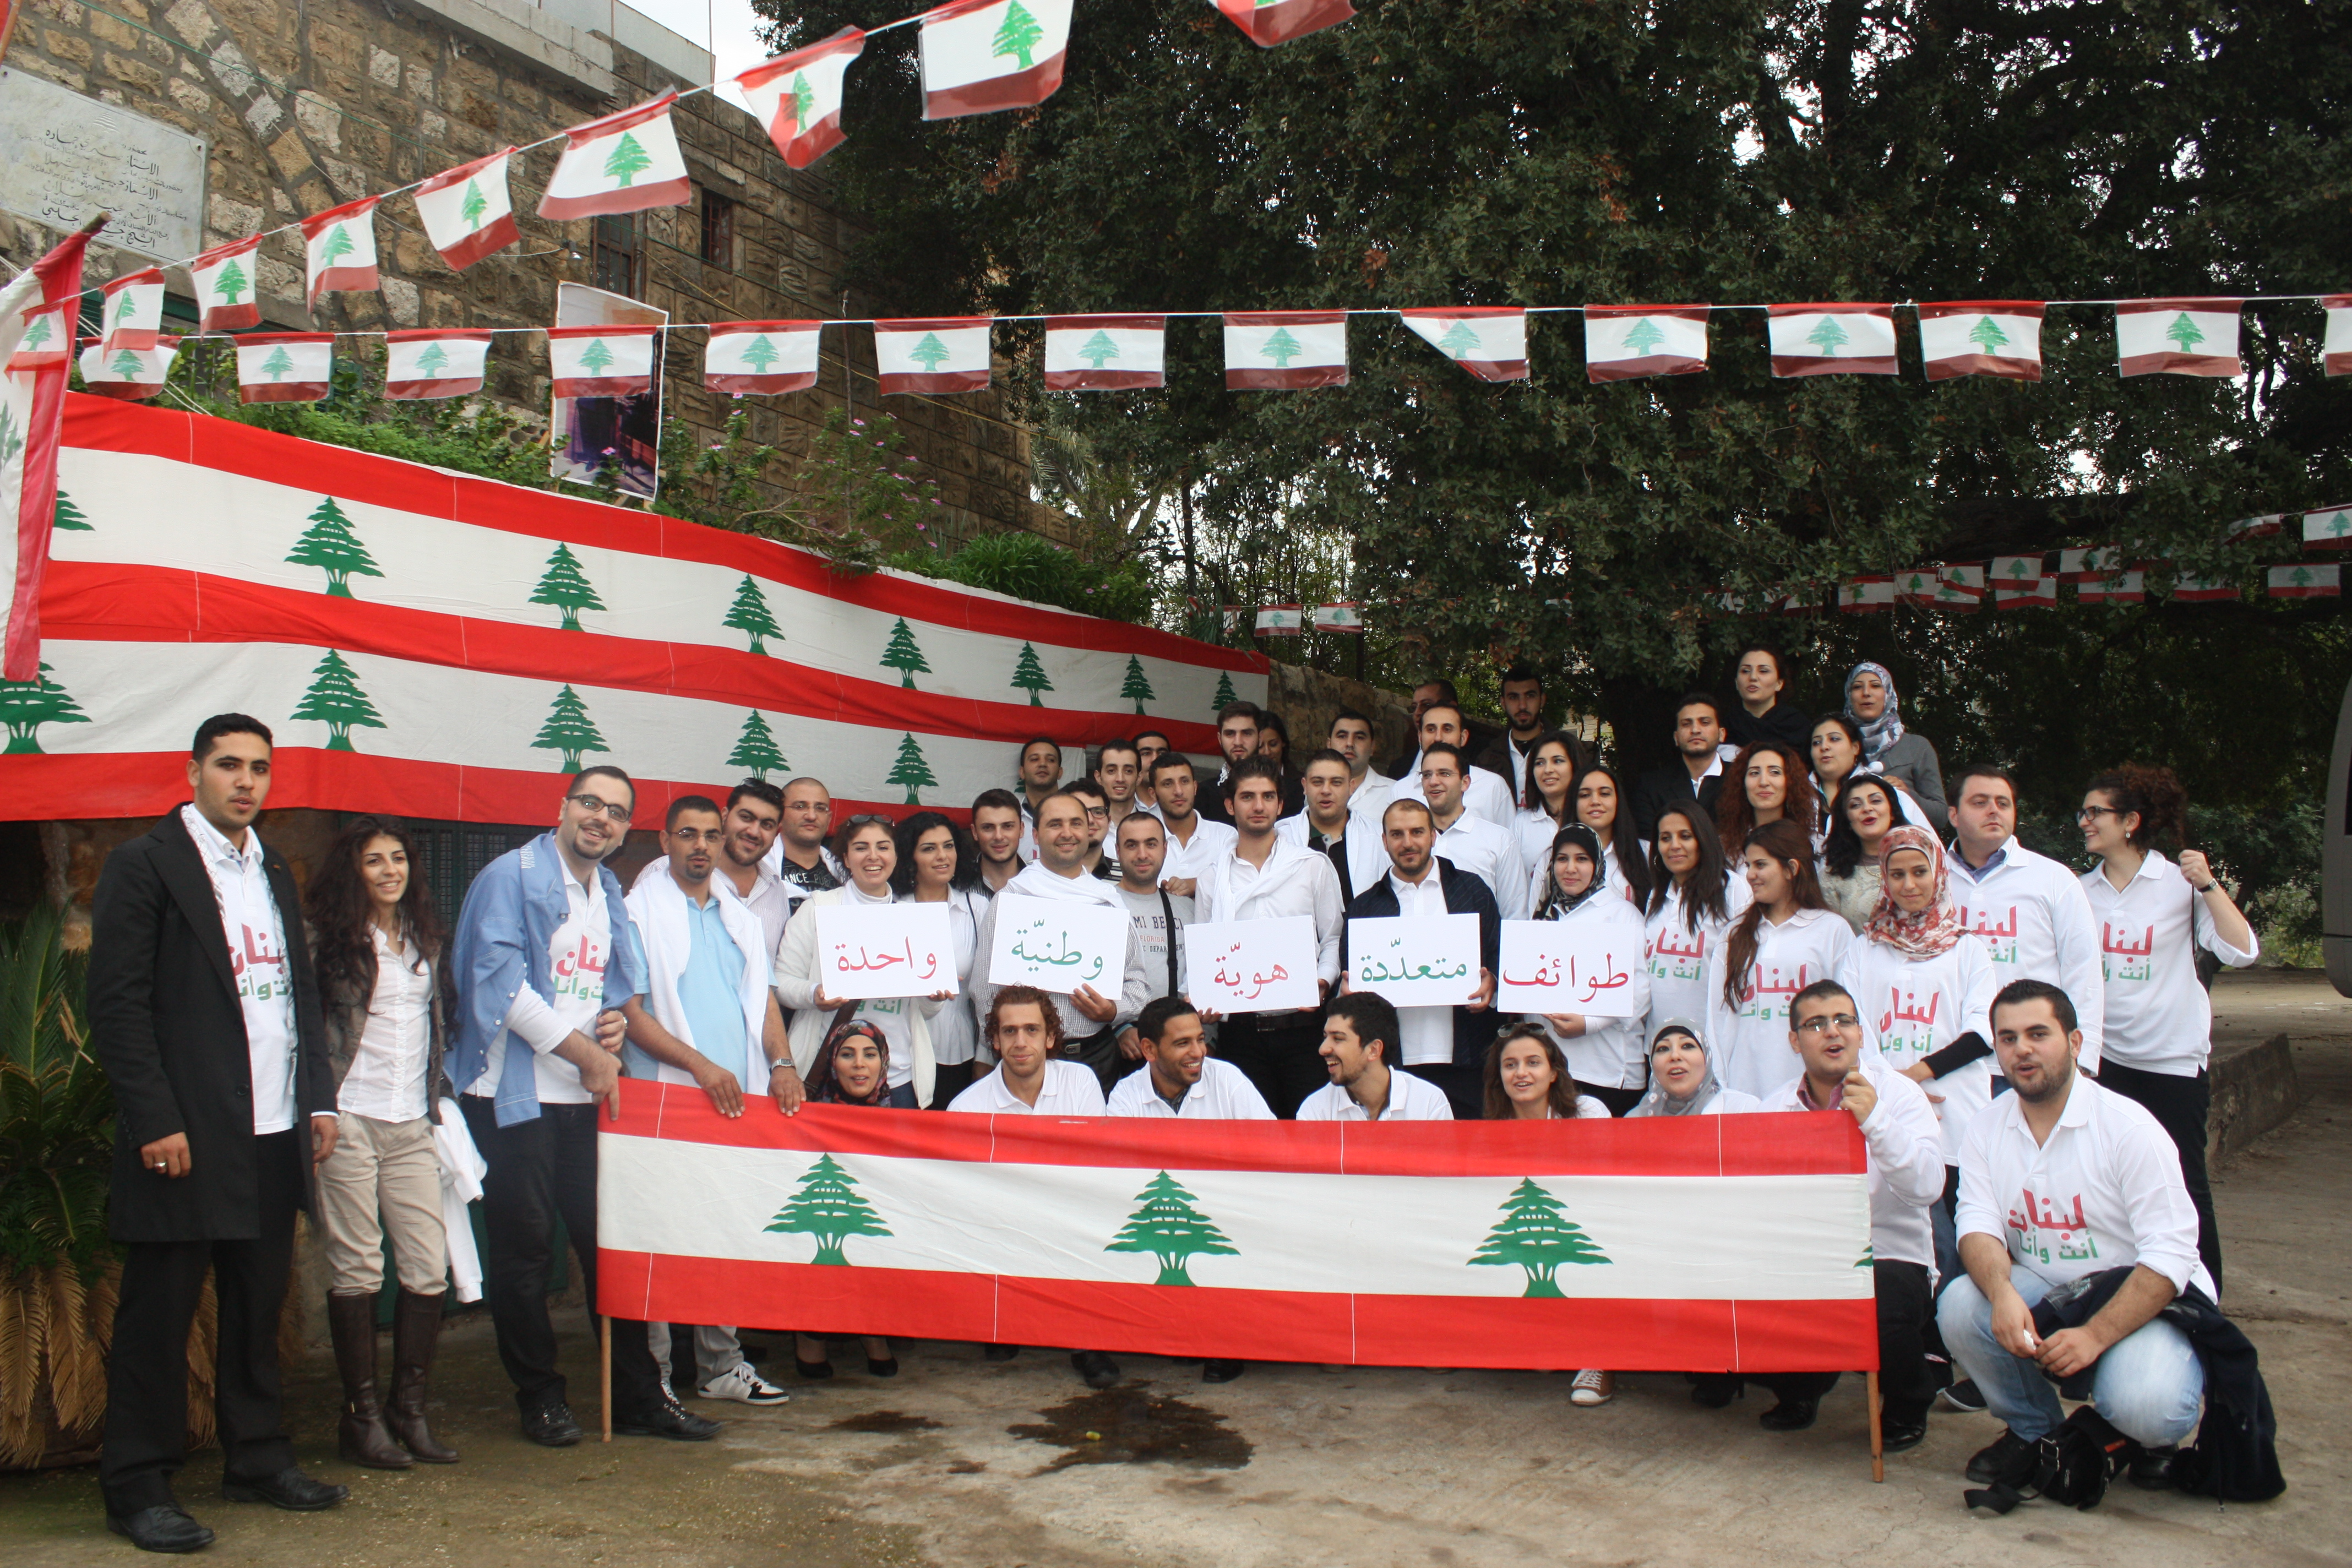 2012 - Youth for Lebanon